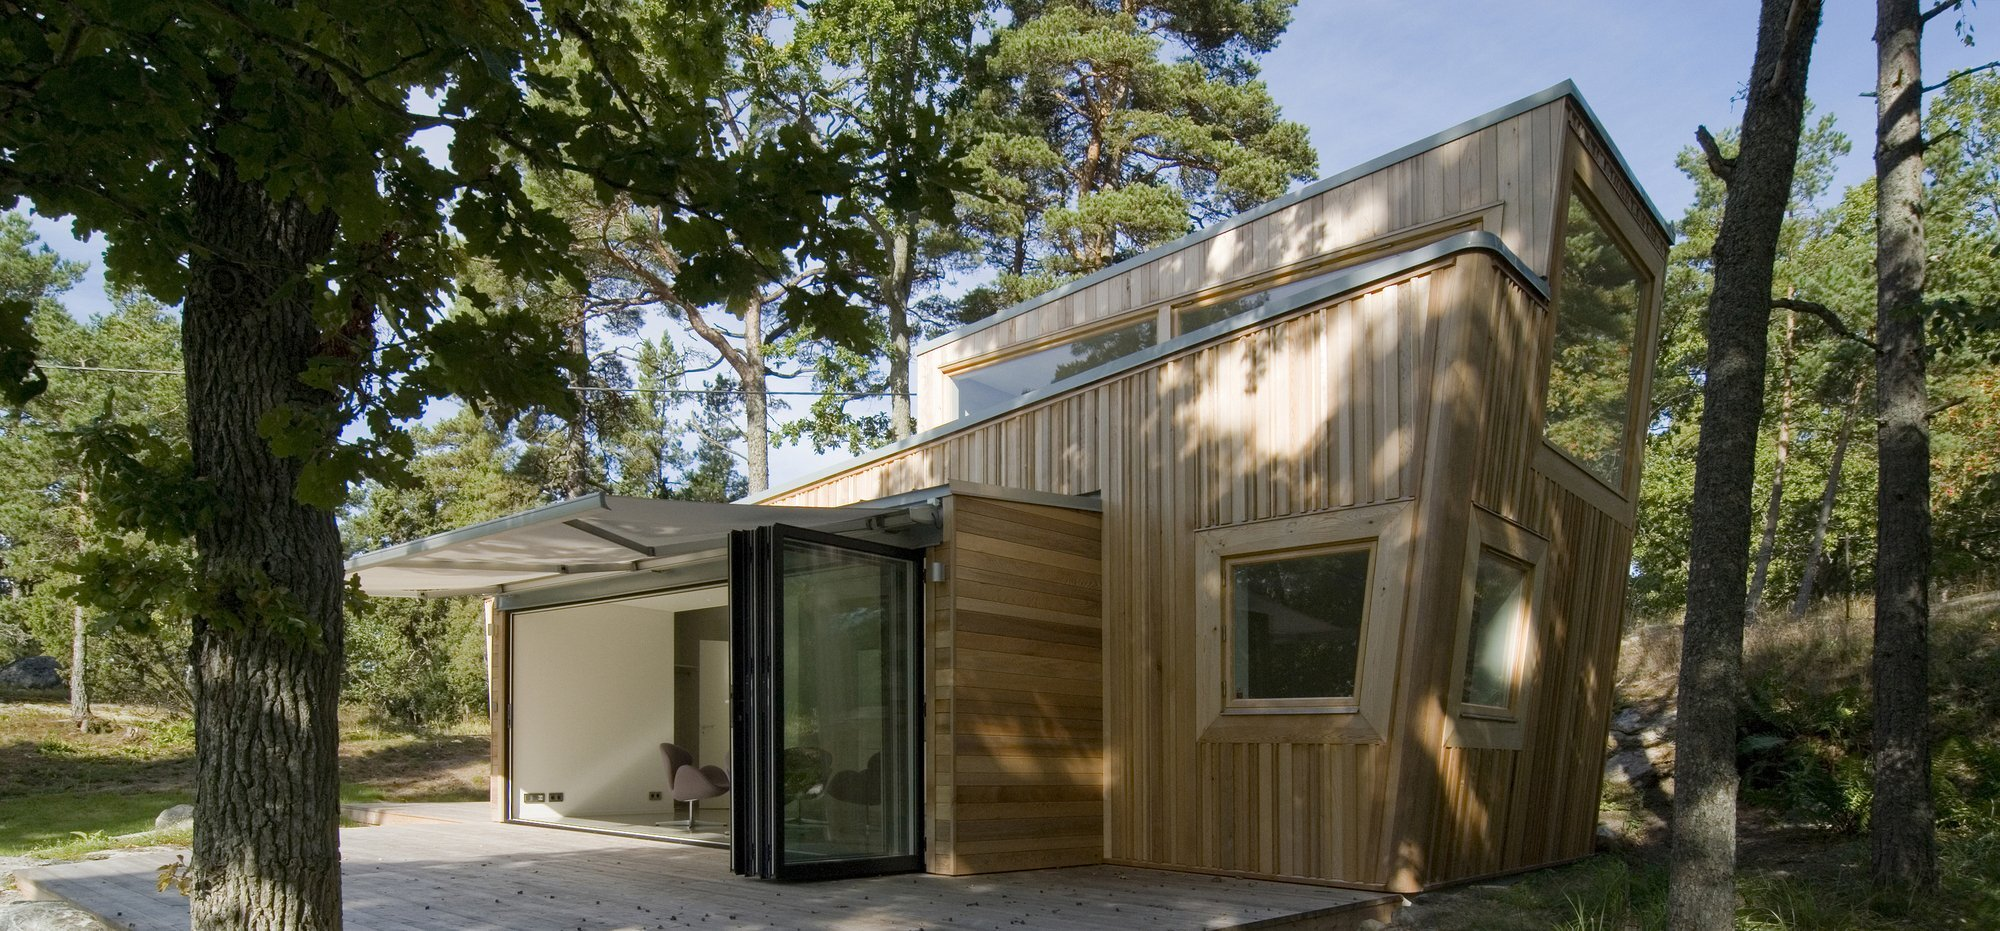 The Wood House - Schlyter + Gezelius Arkitektkontor - Small House - Sweden - Exterior - Humble Homes